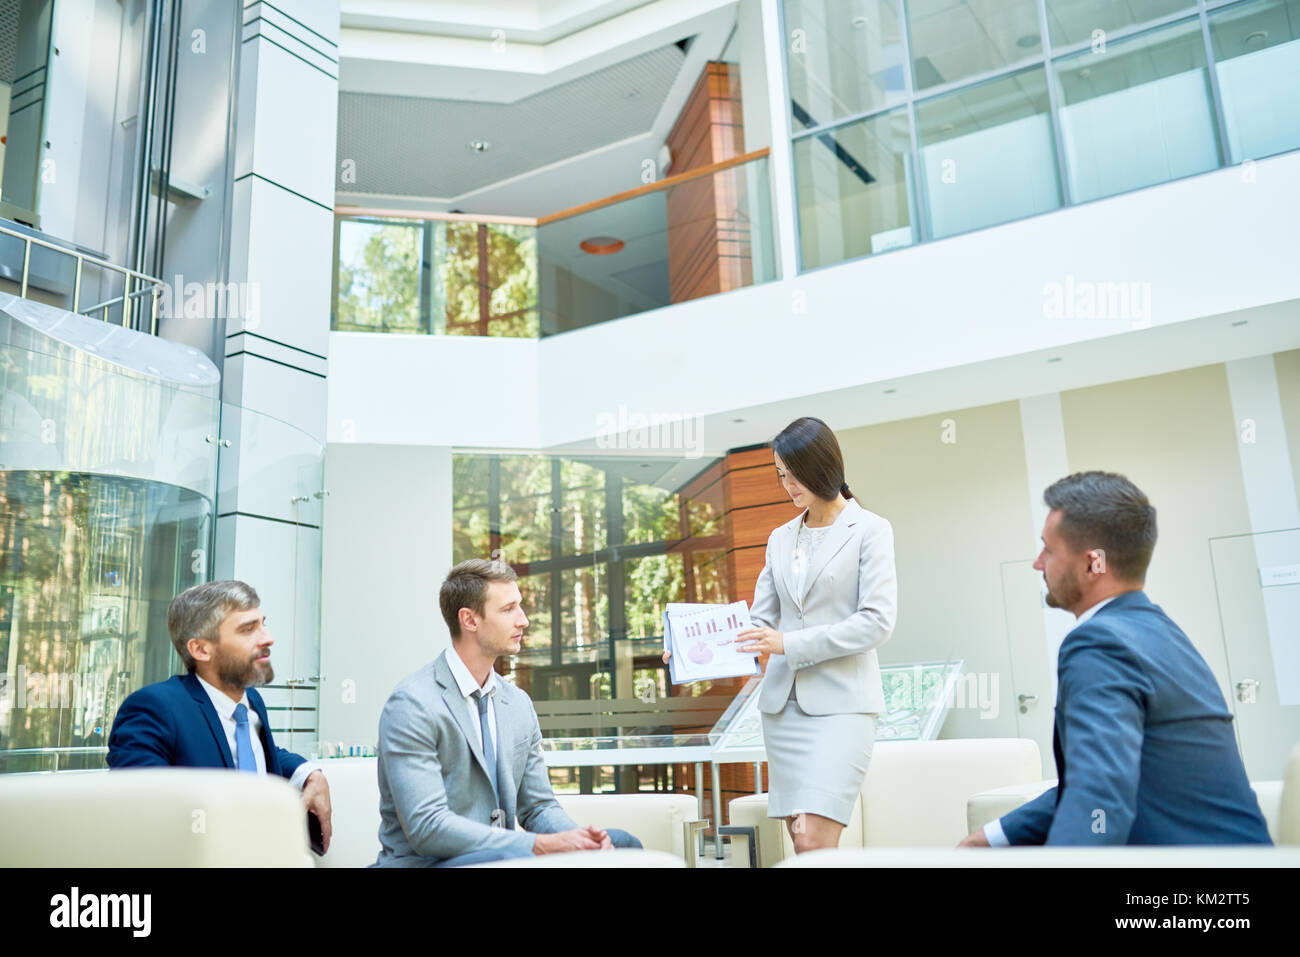 Business Presentation in Modern Office - Stock Image